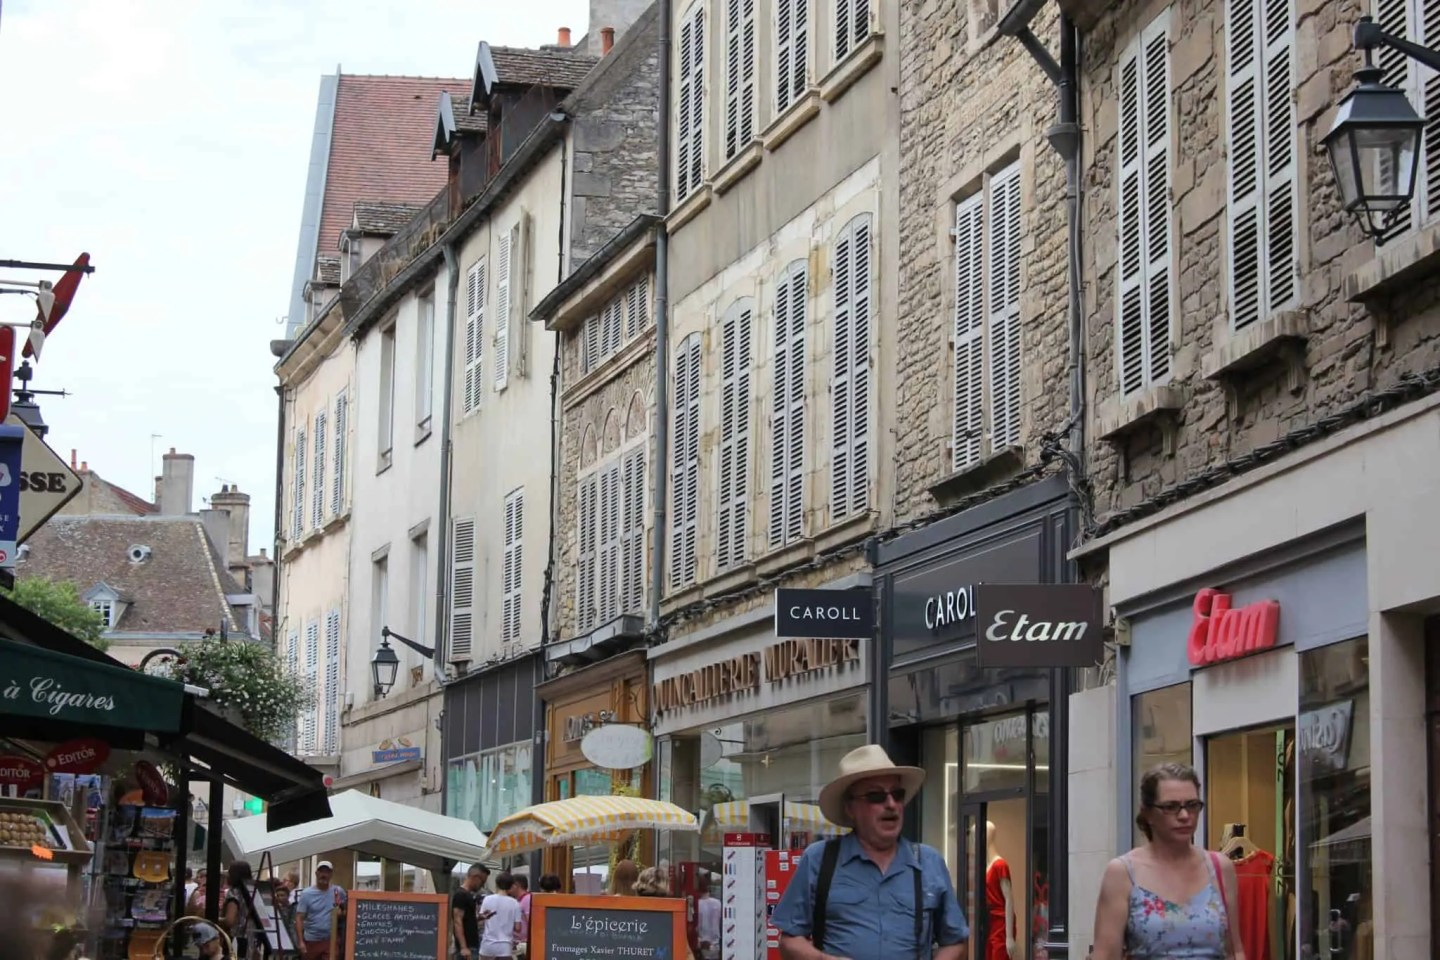 Beaune, France - the wine capital of Burgundy, things to do and see in and around beaune france, main street of Beaune